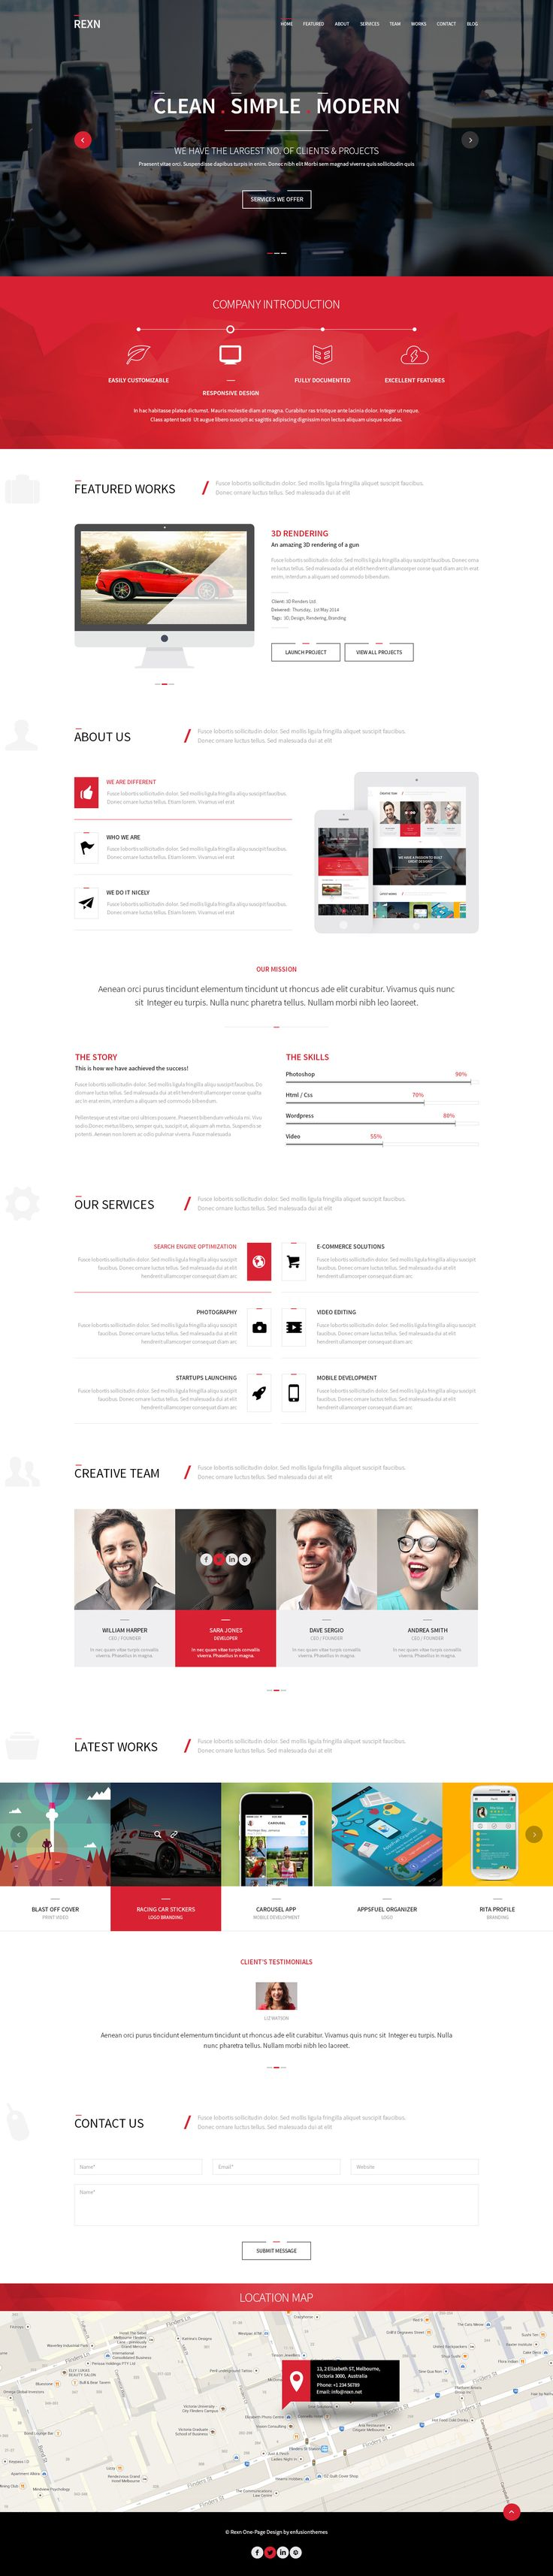 Rexn is an amazing #Responsive One Page Multipurpose #Parallax #template. This Template is Suited for any type of #website, #personal or business use.